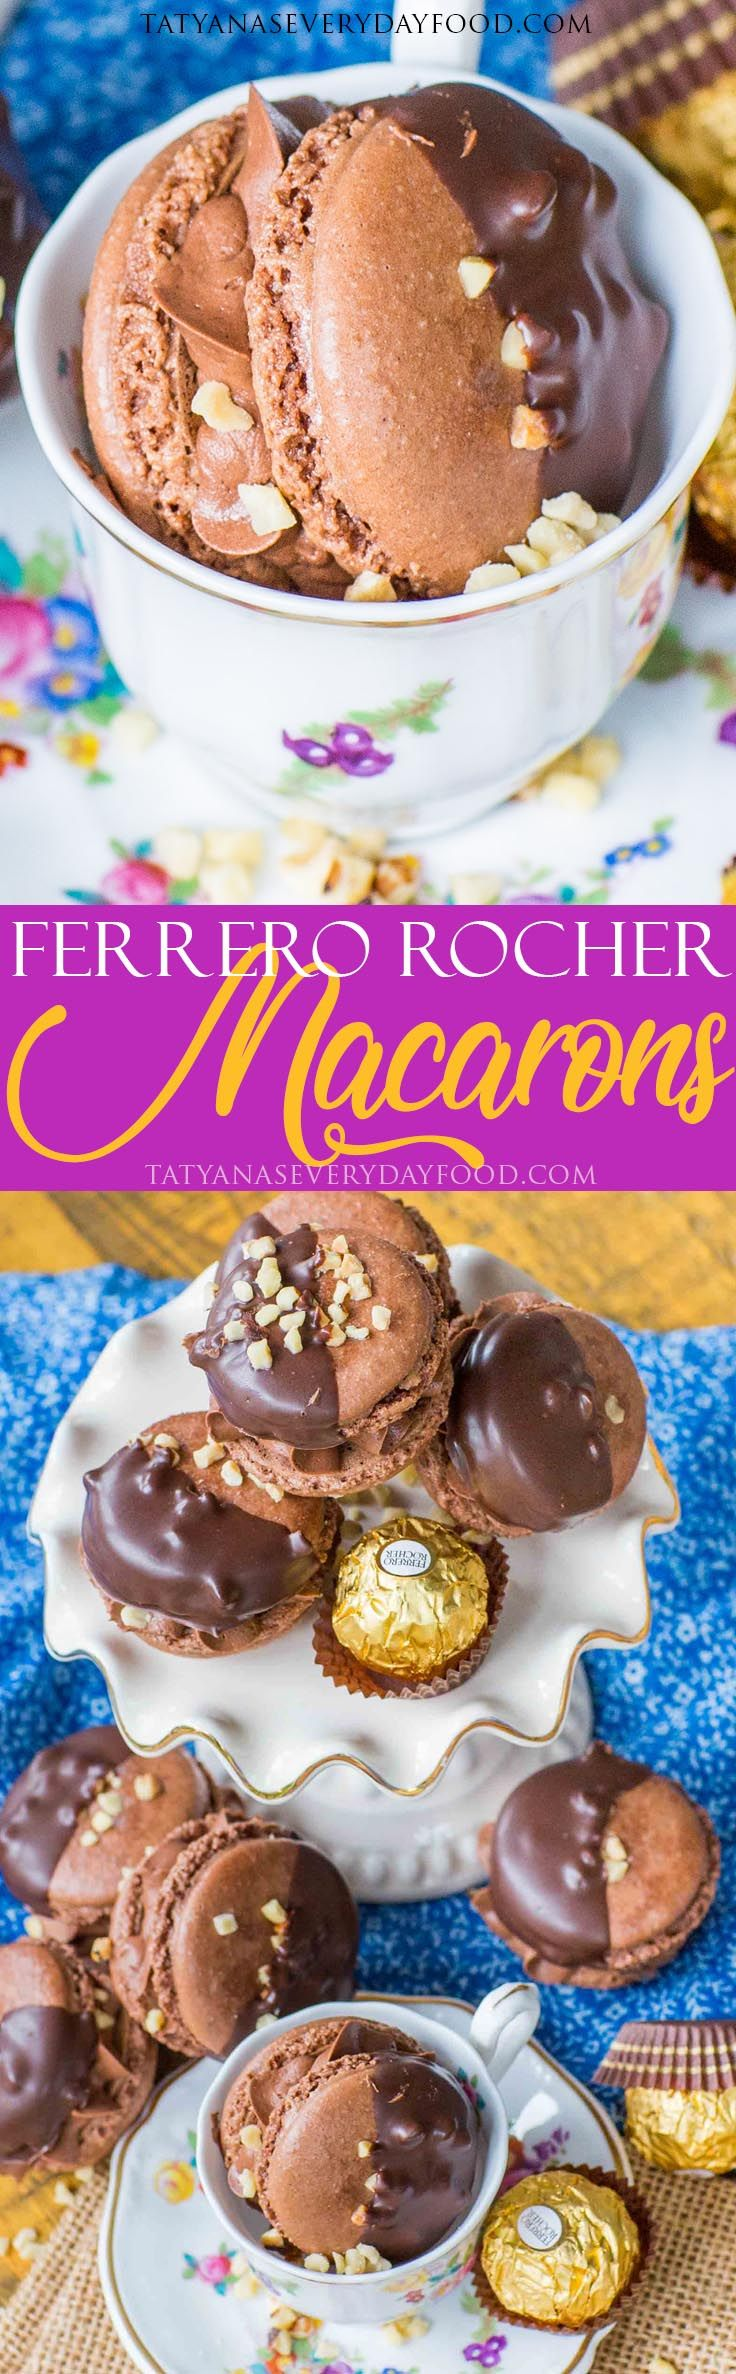 Calling all Ferrero Rocher candy-lovers! These Ferrero Rocher macarons taste just like the famous hazelnut chocolate truffles, down to the crunchy bits of chopped hazelnuts! These little cookies are packed with so much delicious chocolate and hazelnut flavor, you'll want them everyday! These Ferrero Rocher macarons are made with a delicate chocolate macaron shell that […]